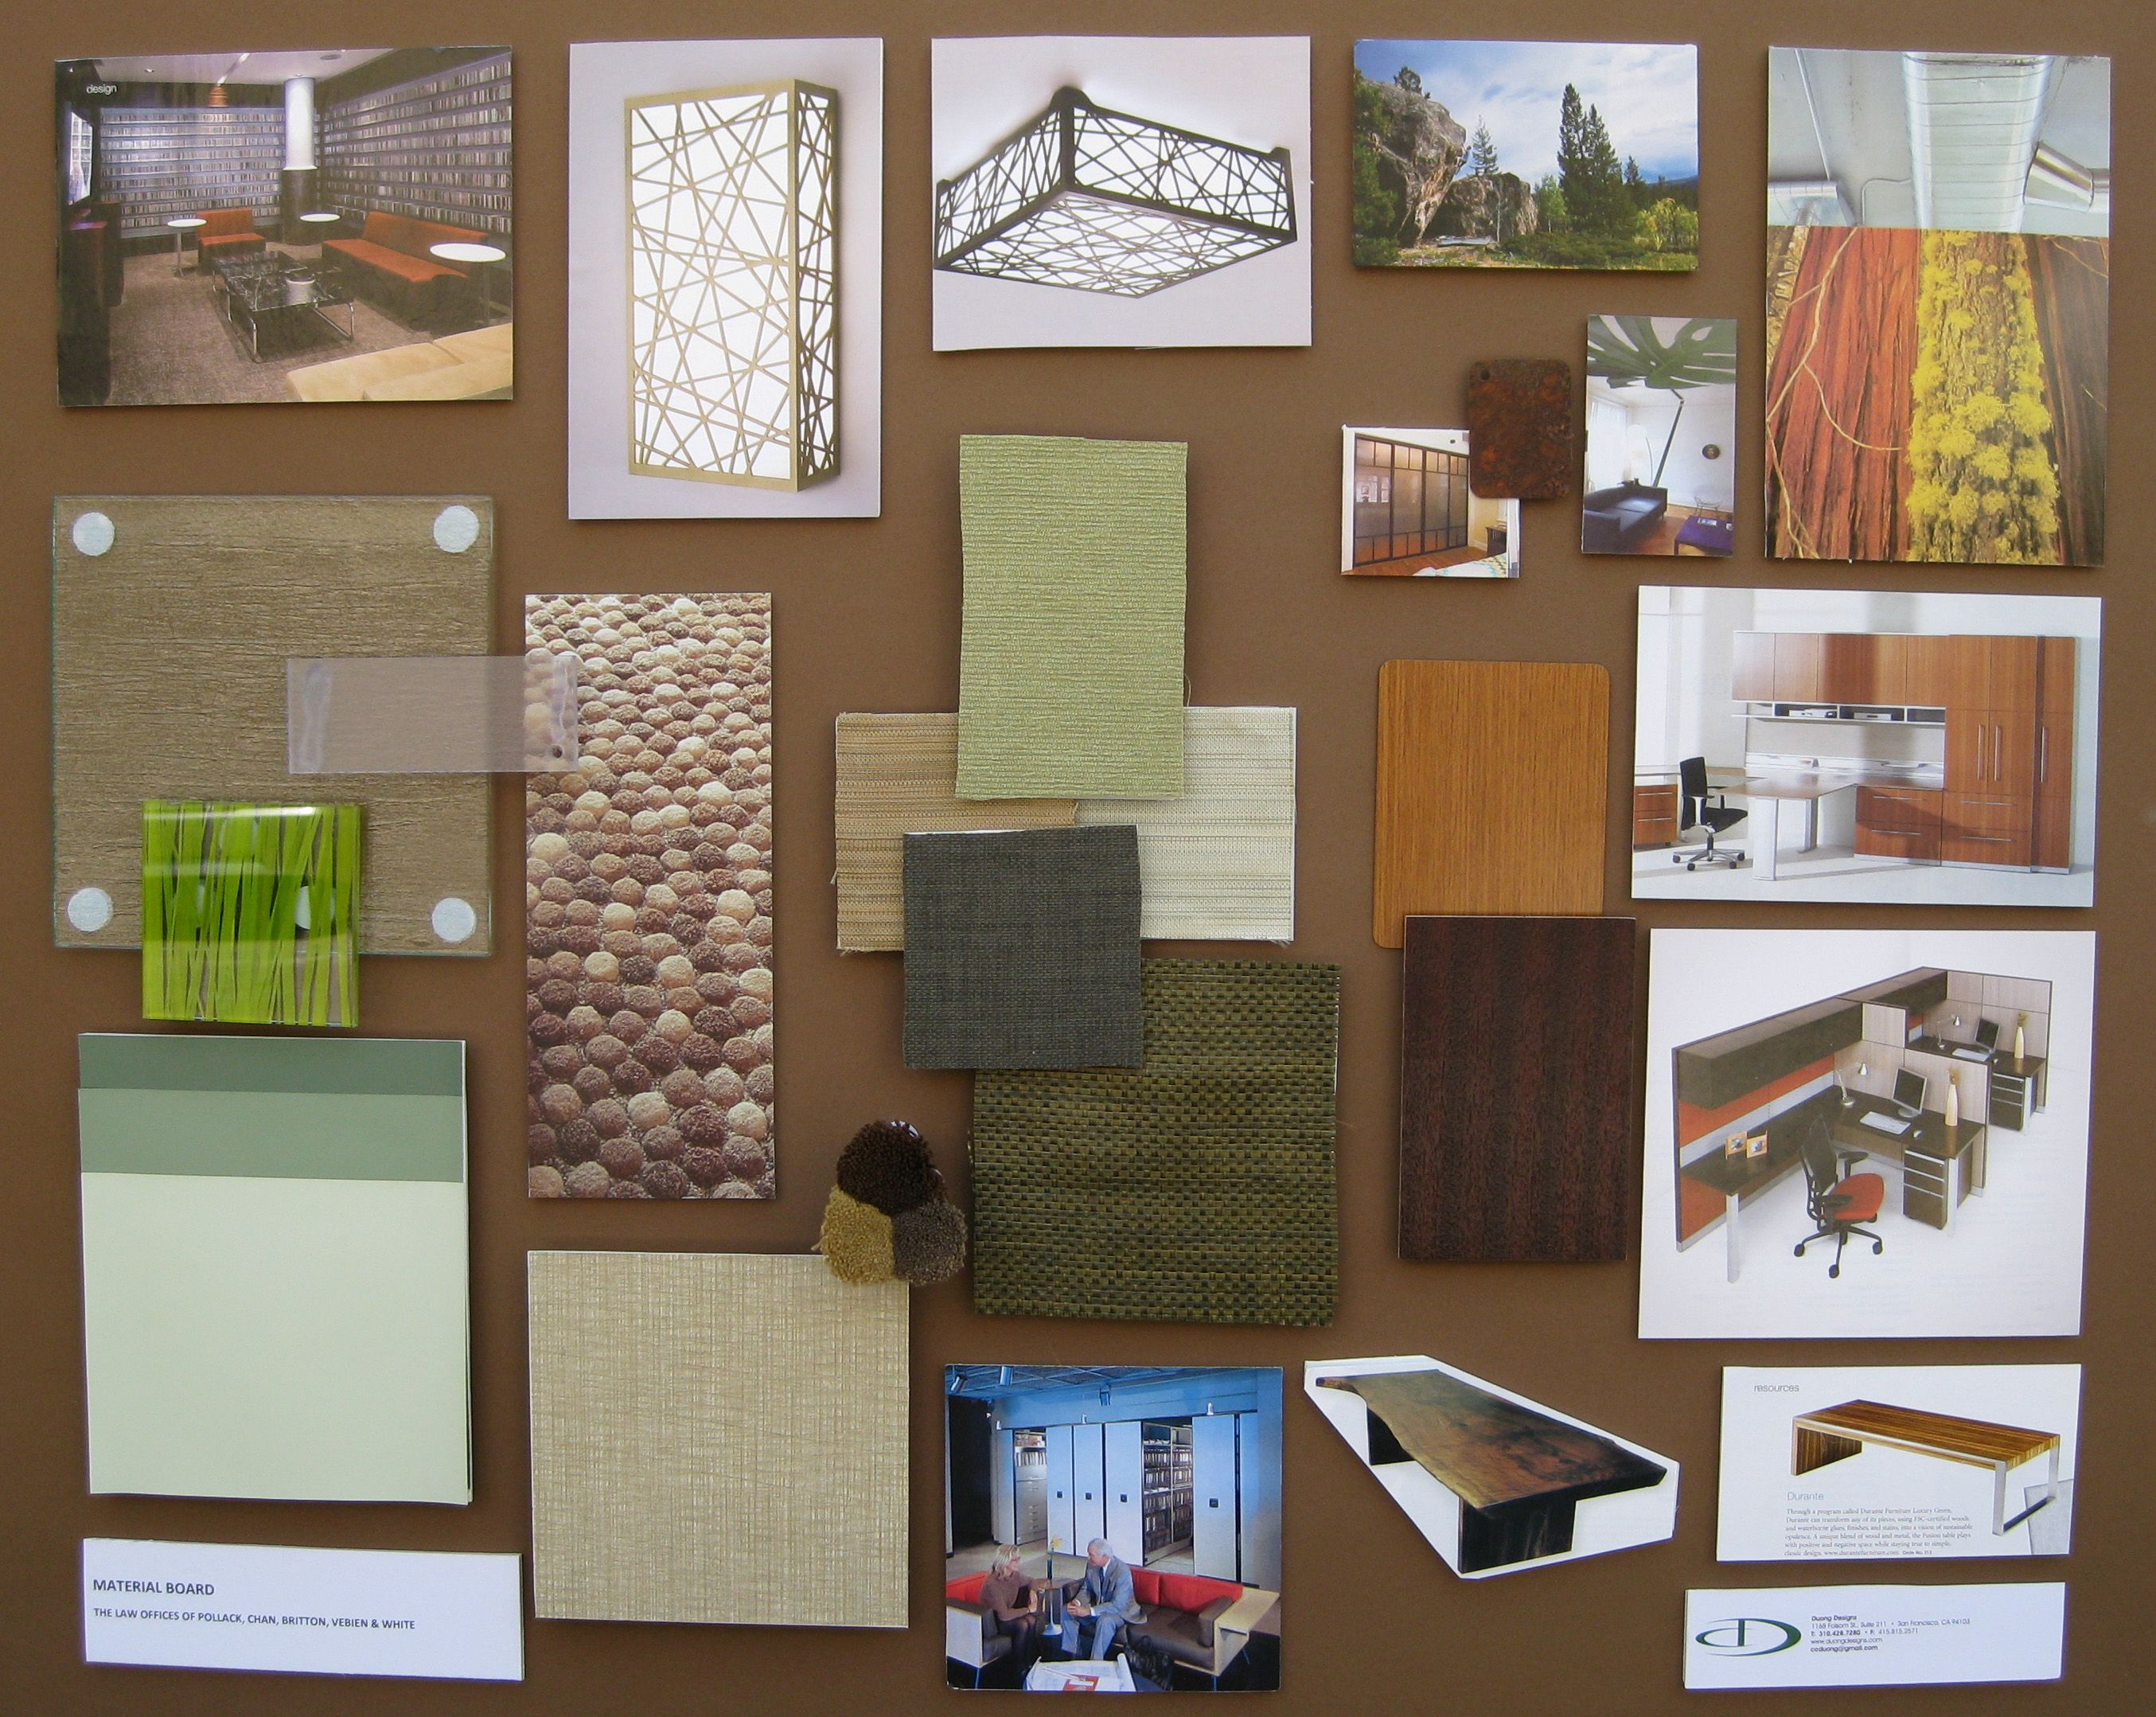 Superior Interior Design Concept Development Boards | Duong Designs » Office Concept  U2013 Floorplan U0026 Material Board Part 12